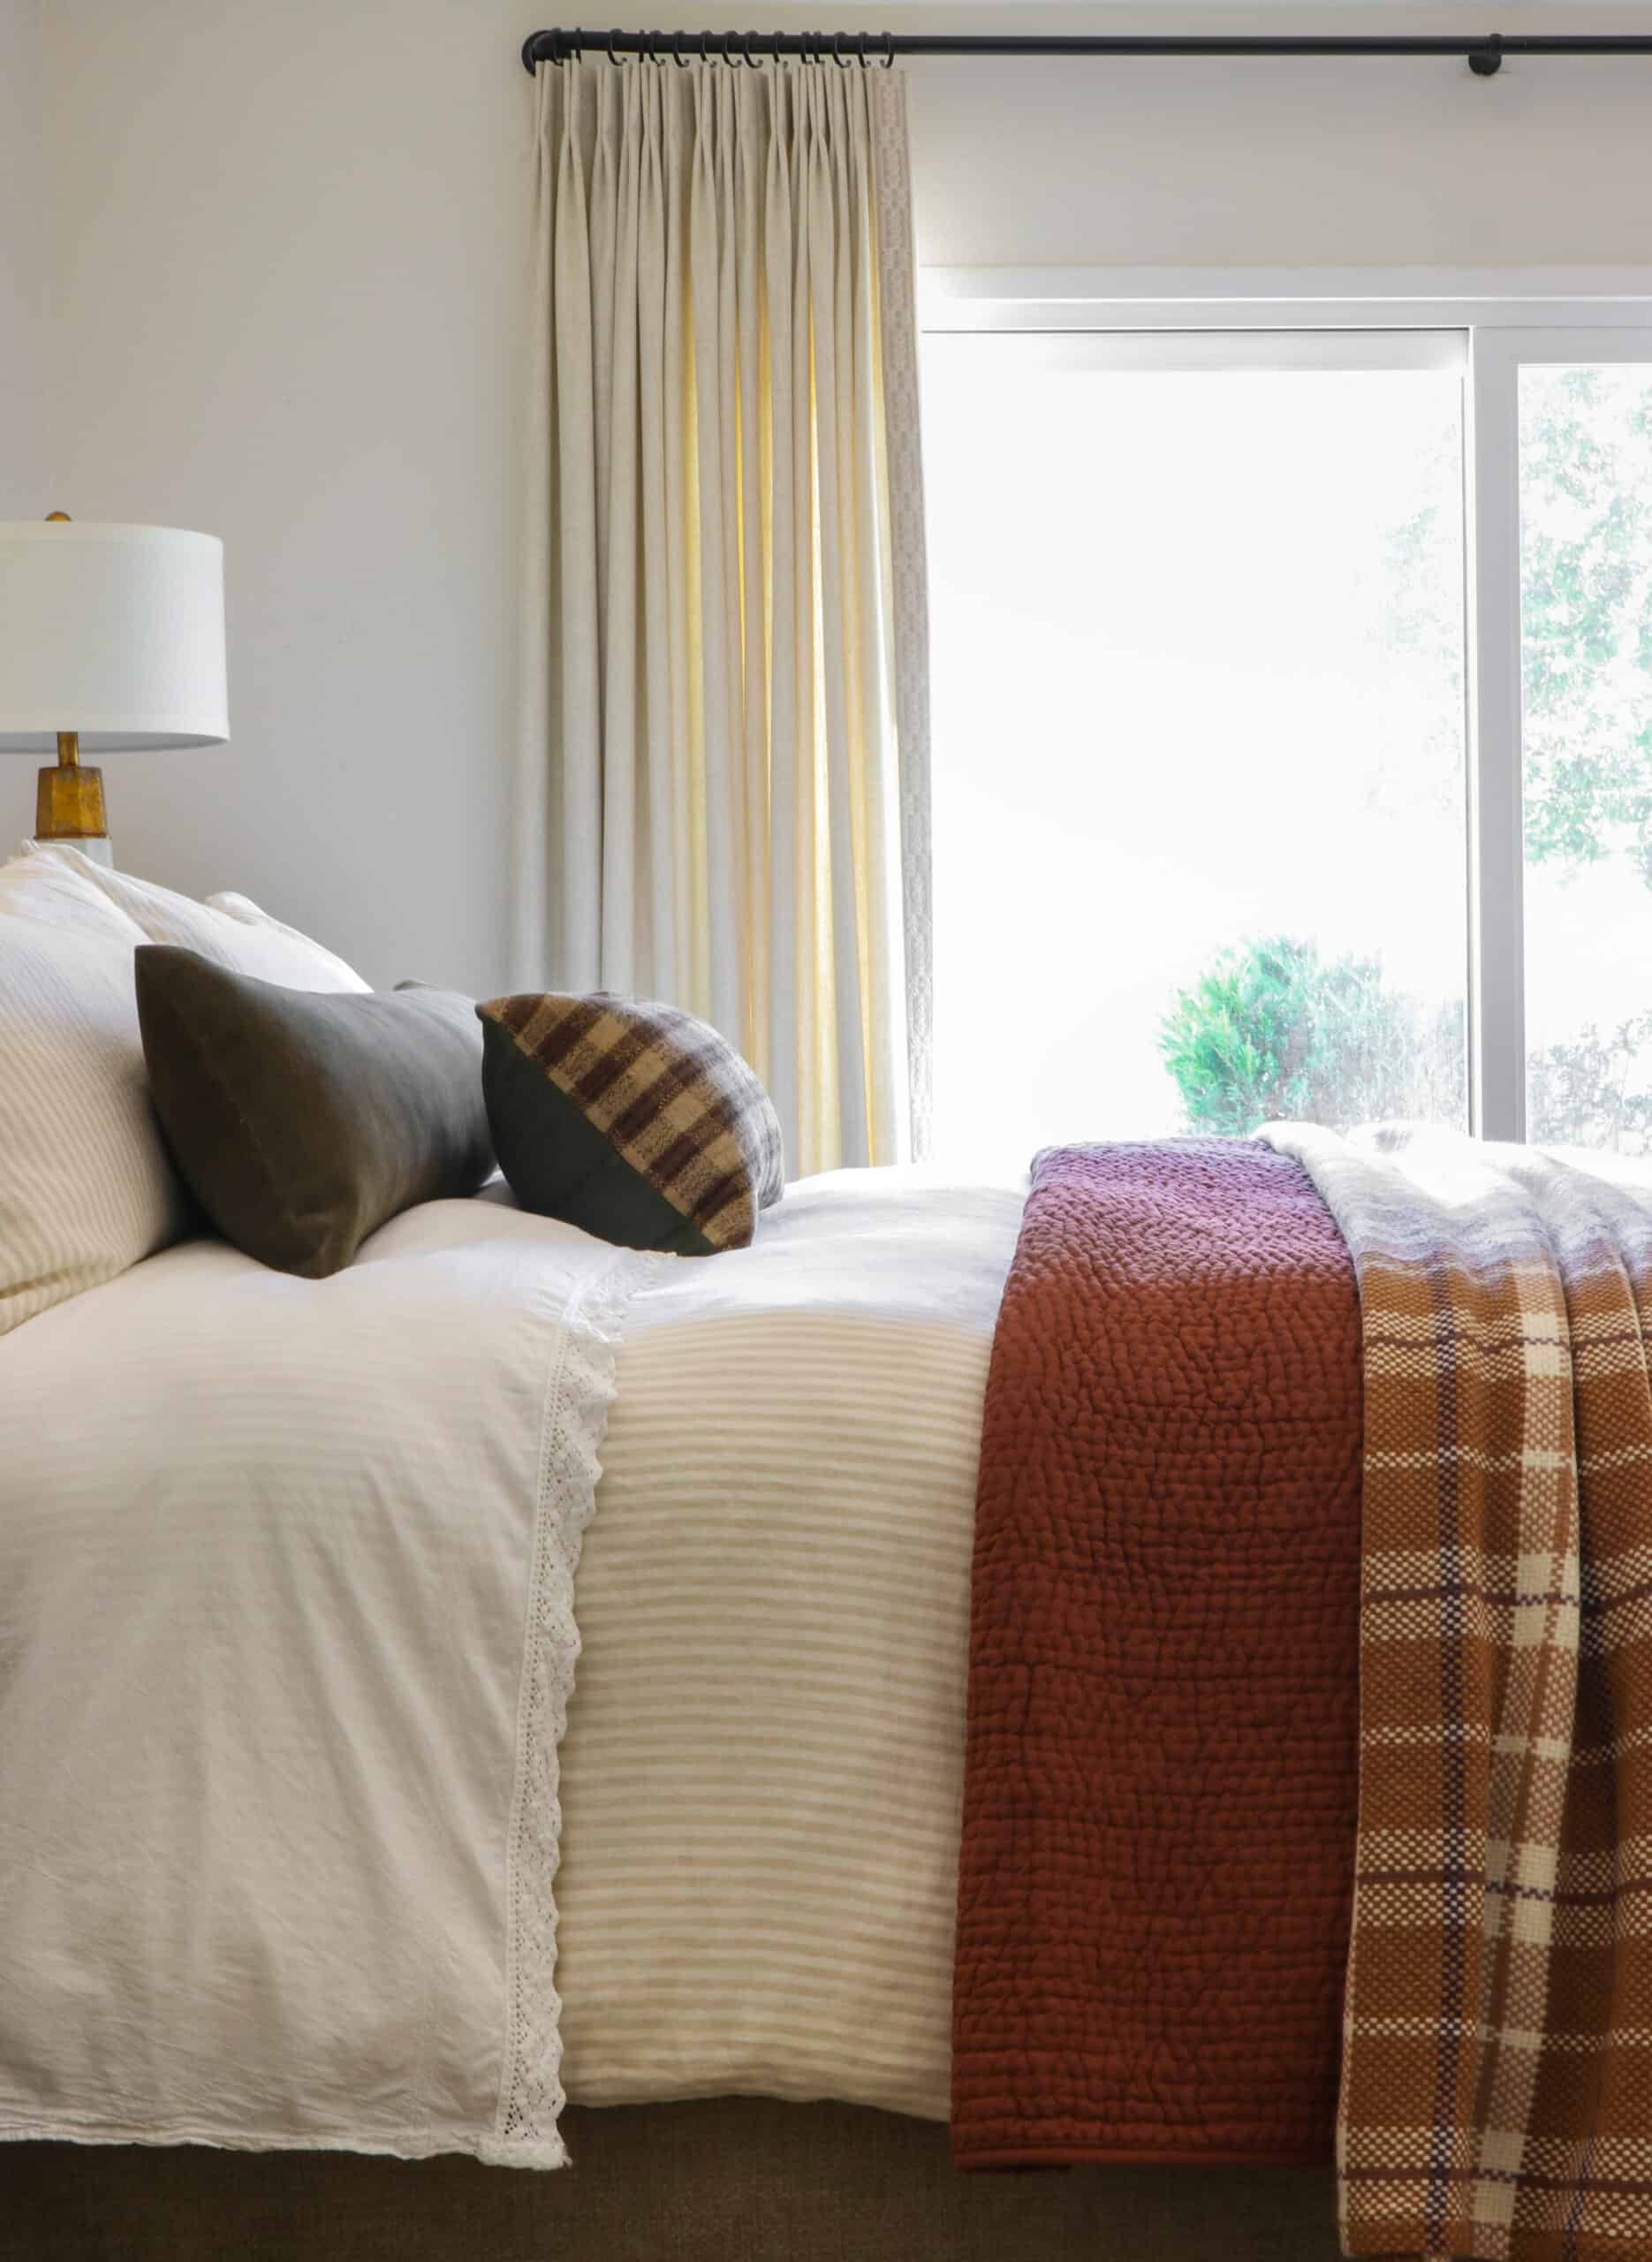 side view of bed with rust and plaid bedding